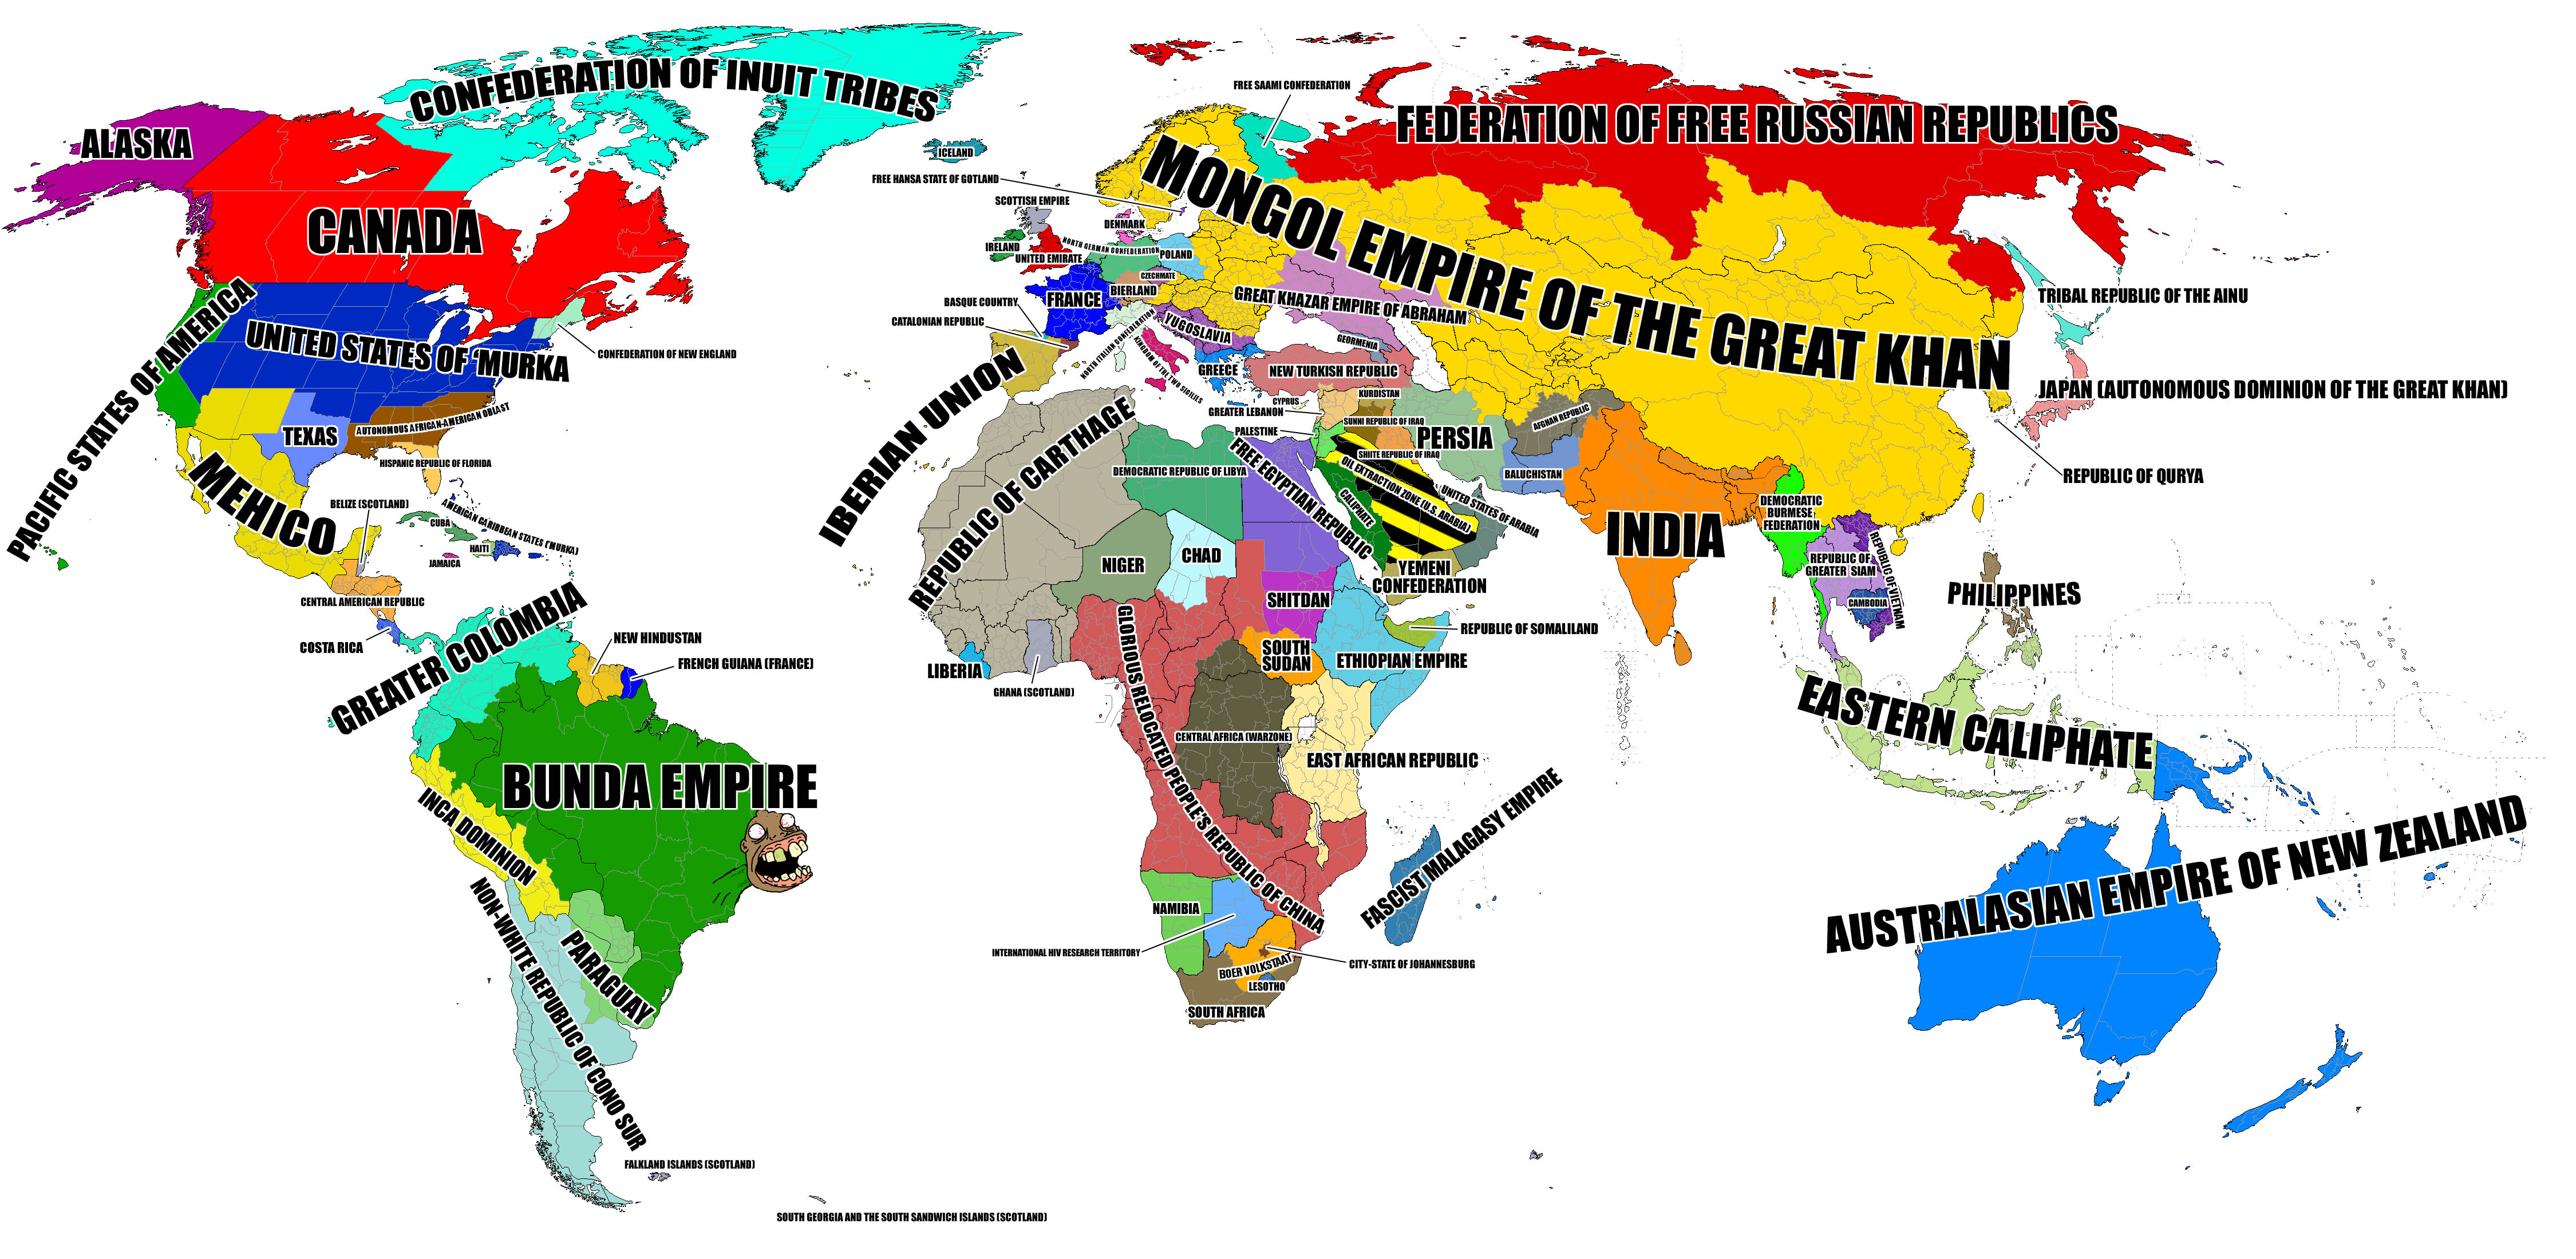 image 150567 the world according to know your meme